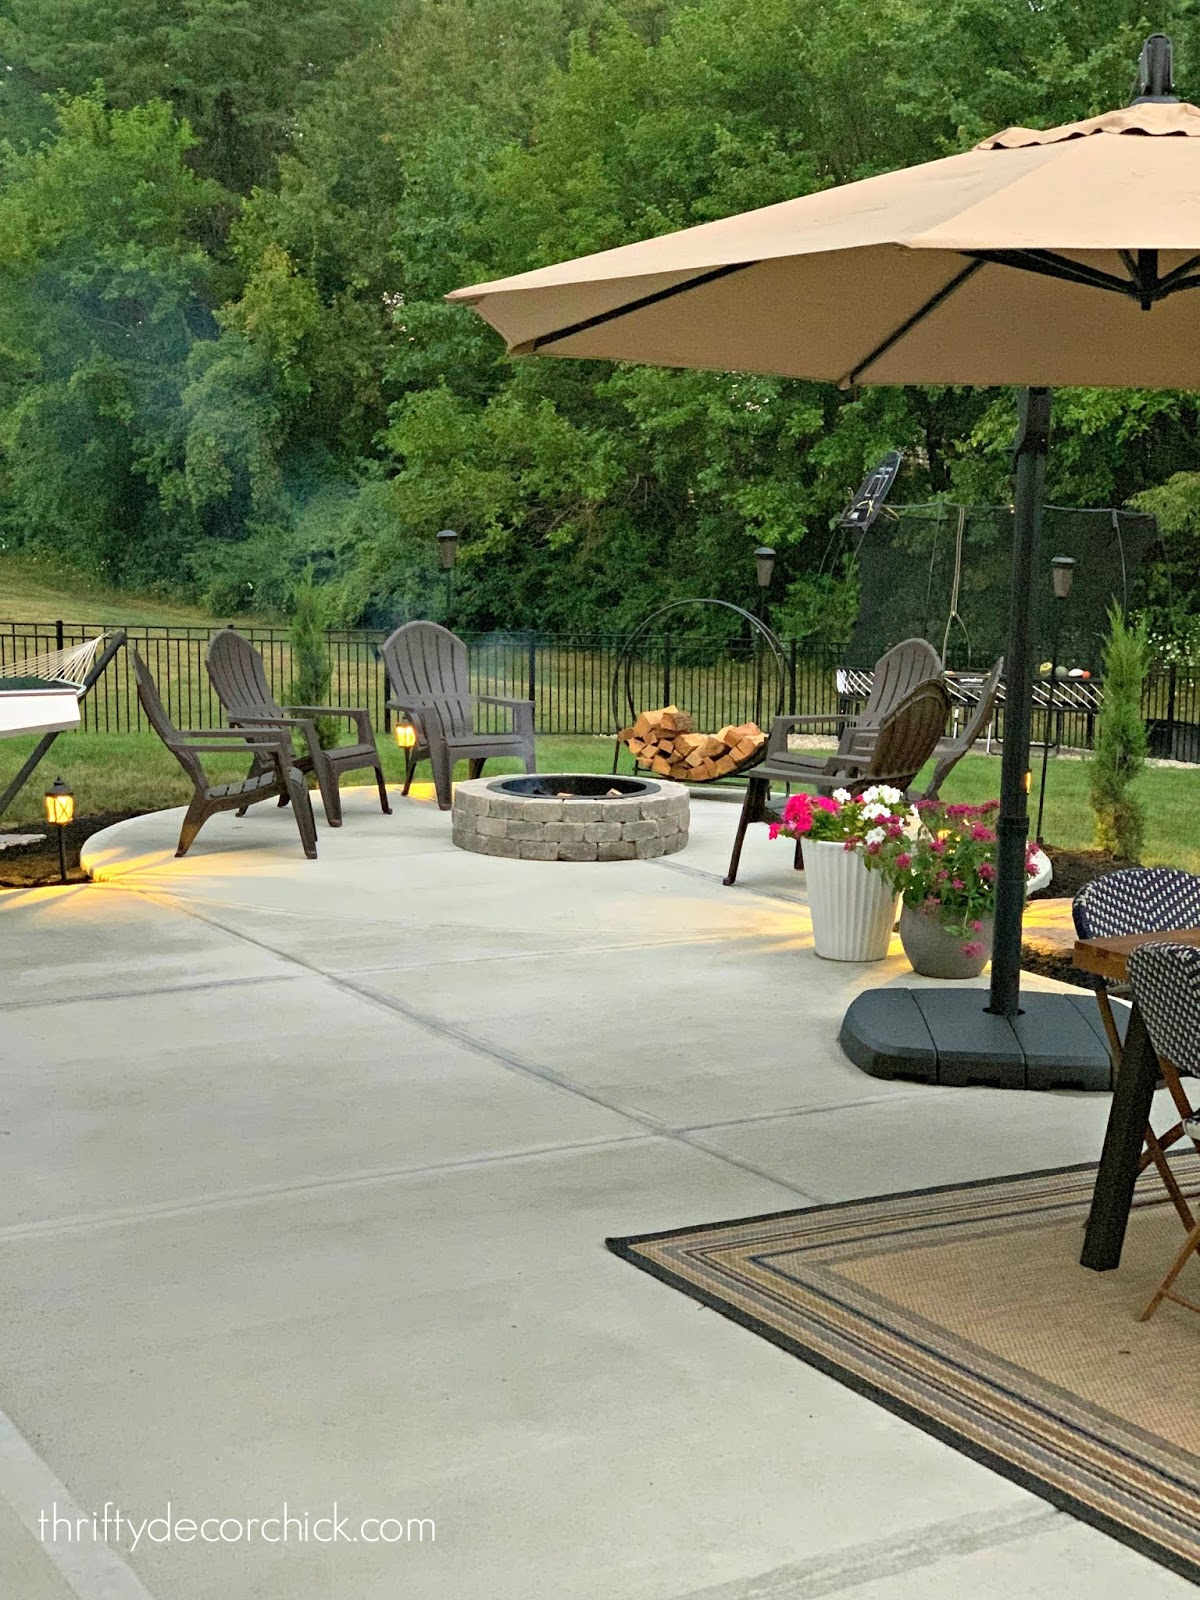 Large patio with rounded fire pit area